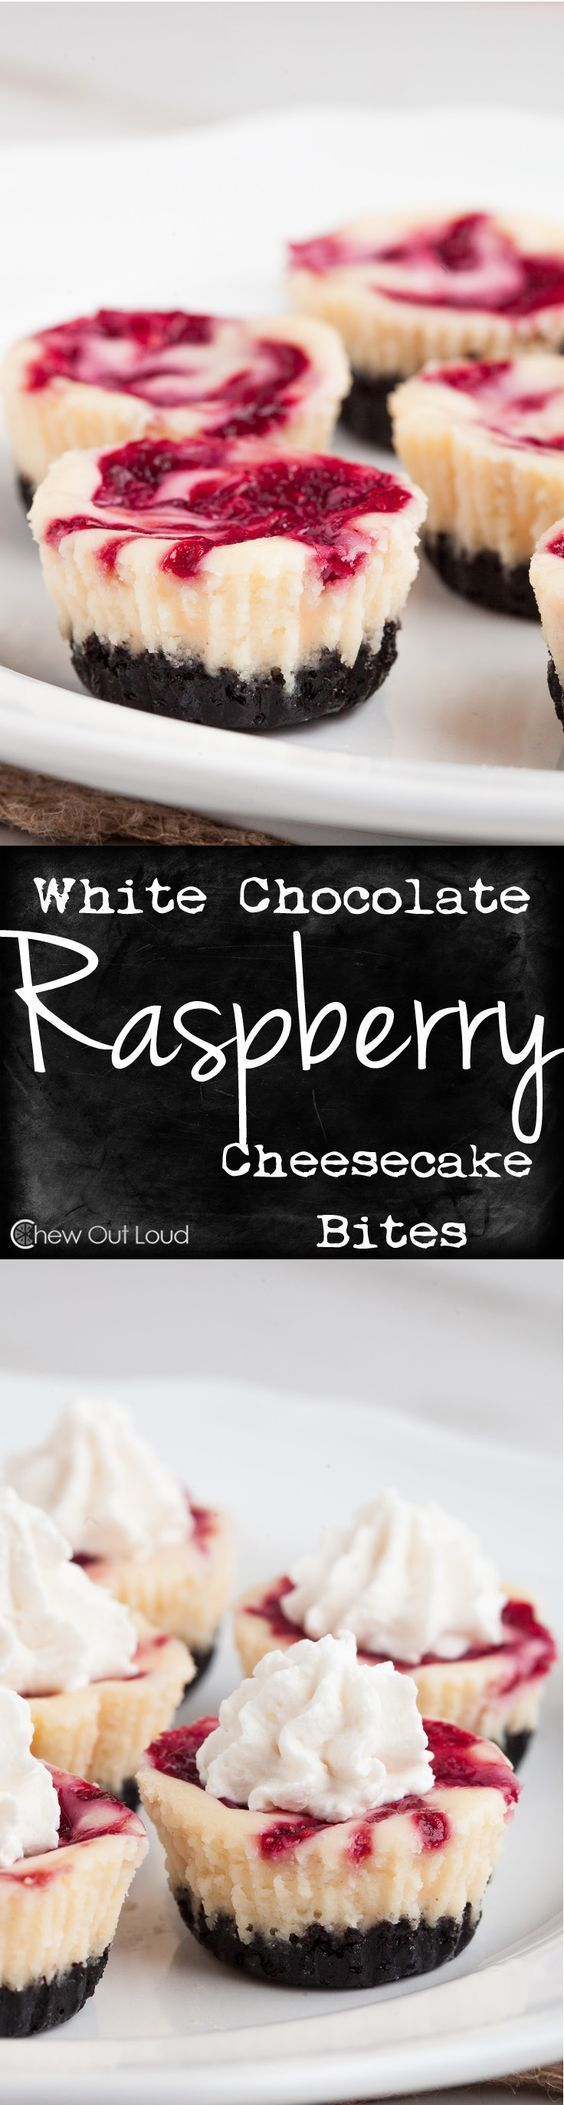 White Chocolate Raspberry Cheesecake Bites Individual Servings Dessert Recipe via Chew Out Loud - New York Style dense, rich, luscious cheesecakes that you can pop into your mouth. A dessert idea perfect for any occasion. #whitechocolateraspberrycheesecake